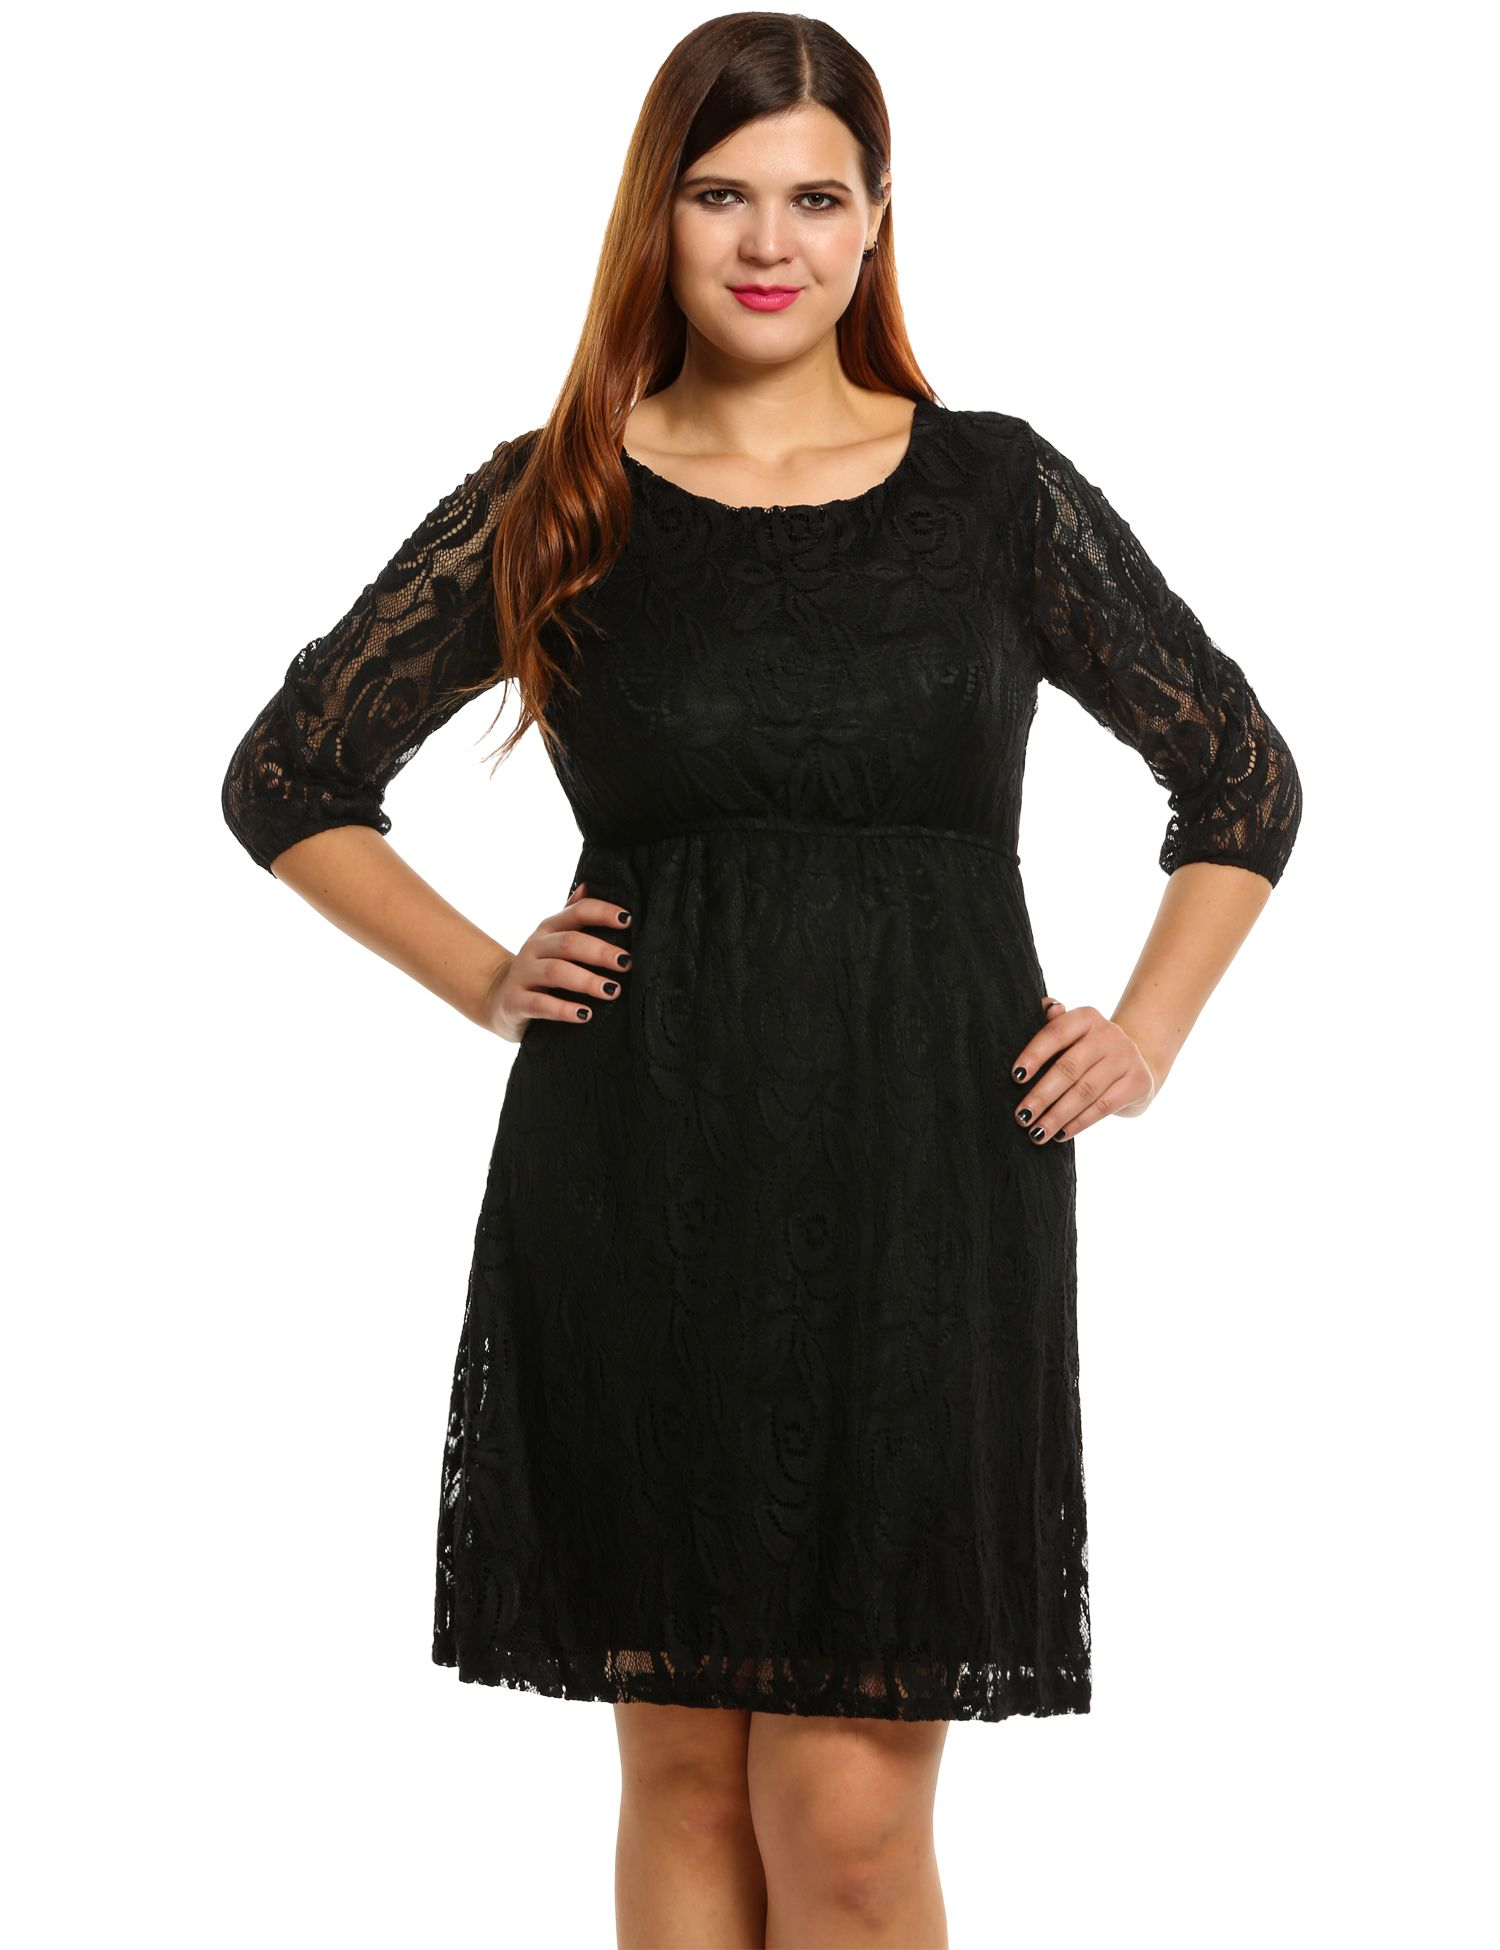 Womens Clothing | Dresses | Cocktail | 3/4-Sleeve | Dillards.com ...